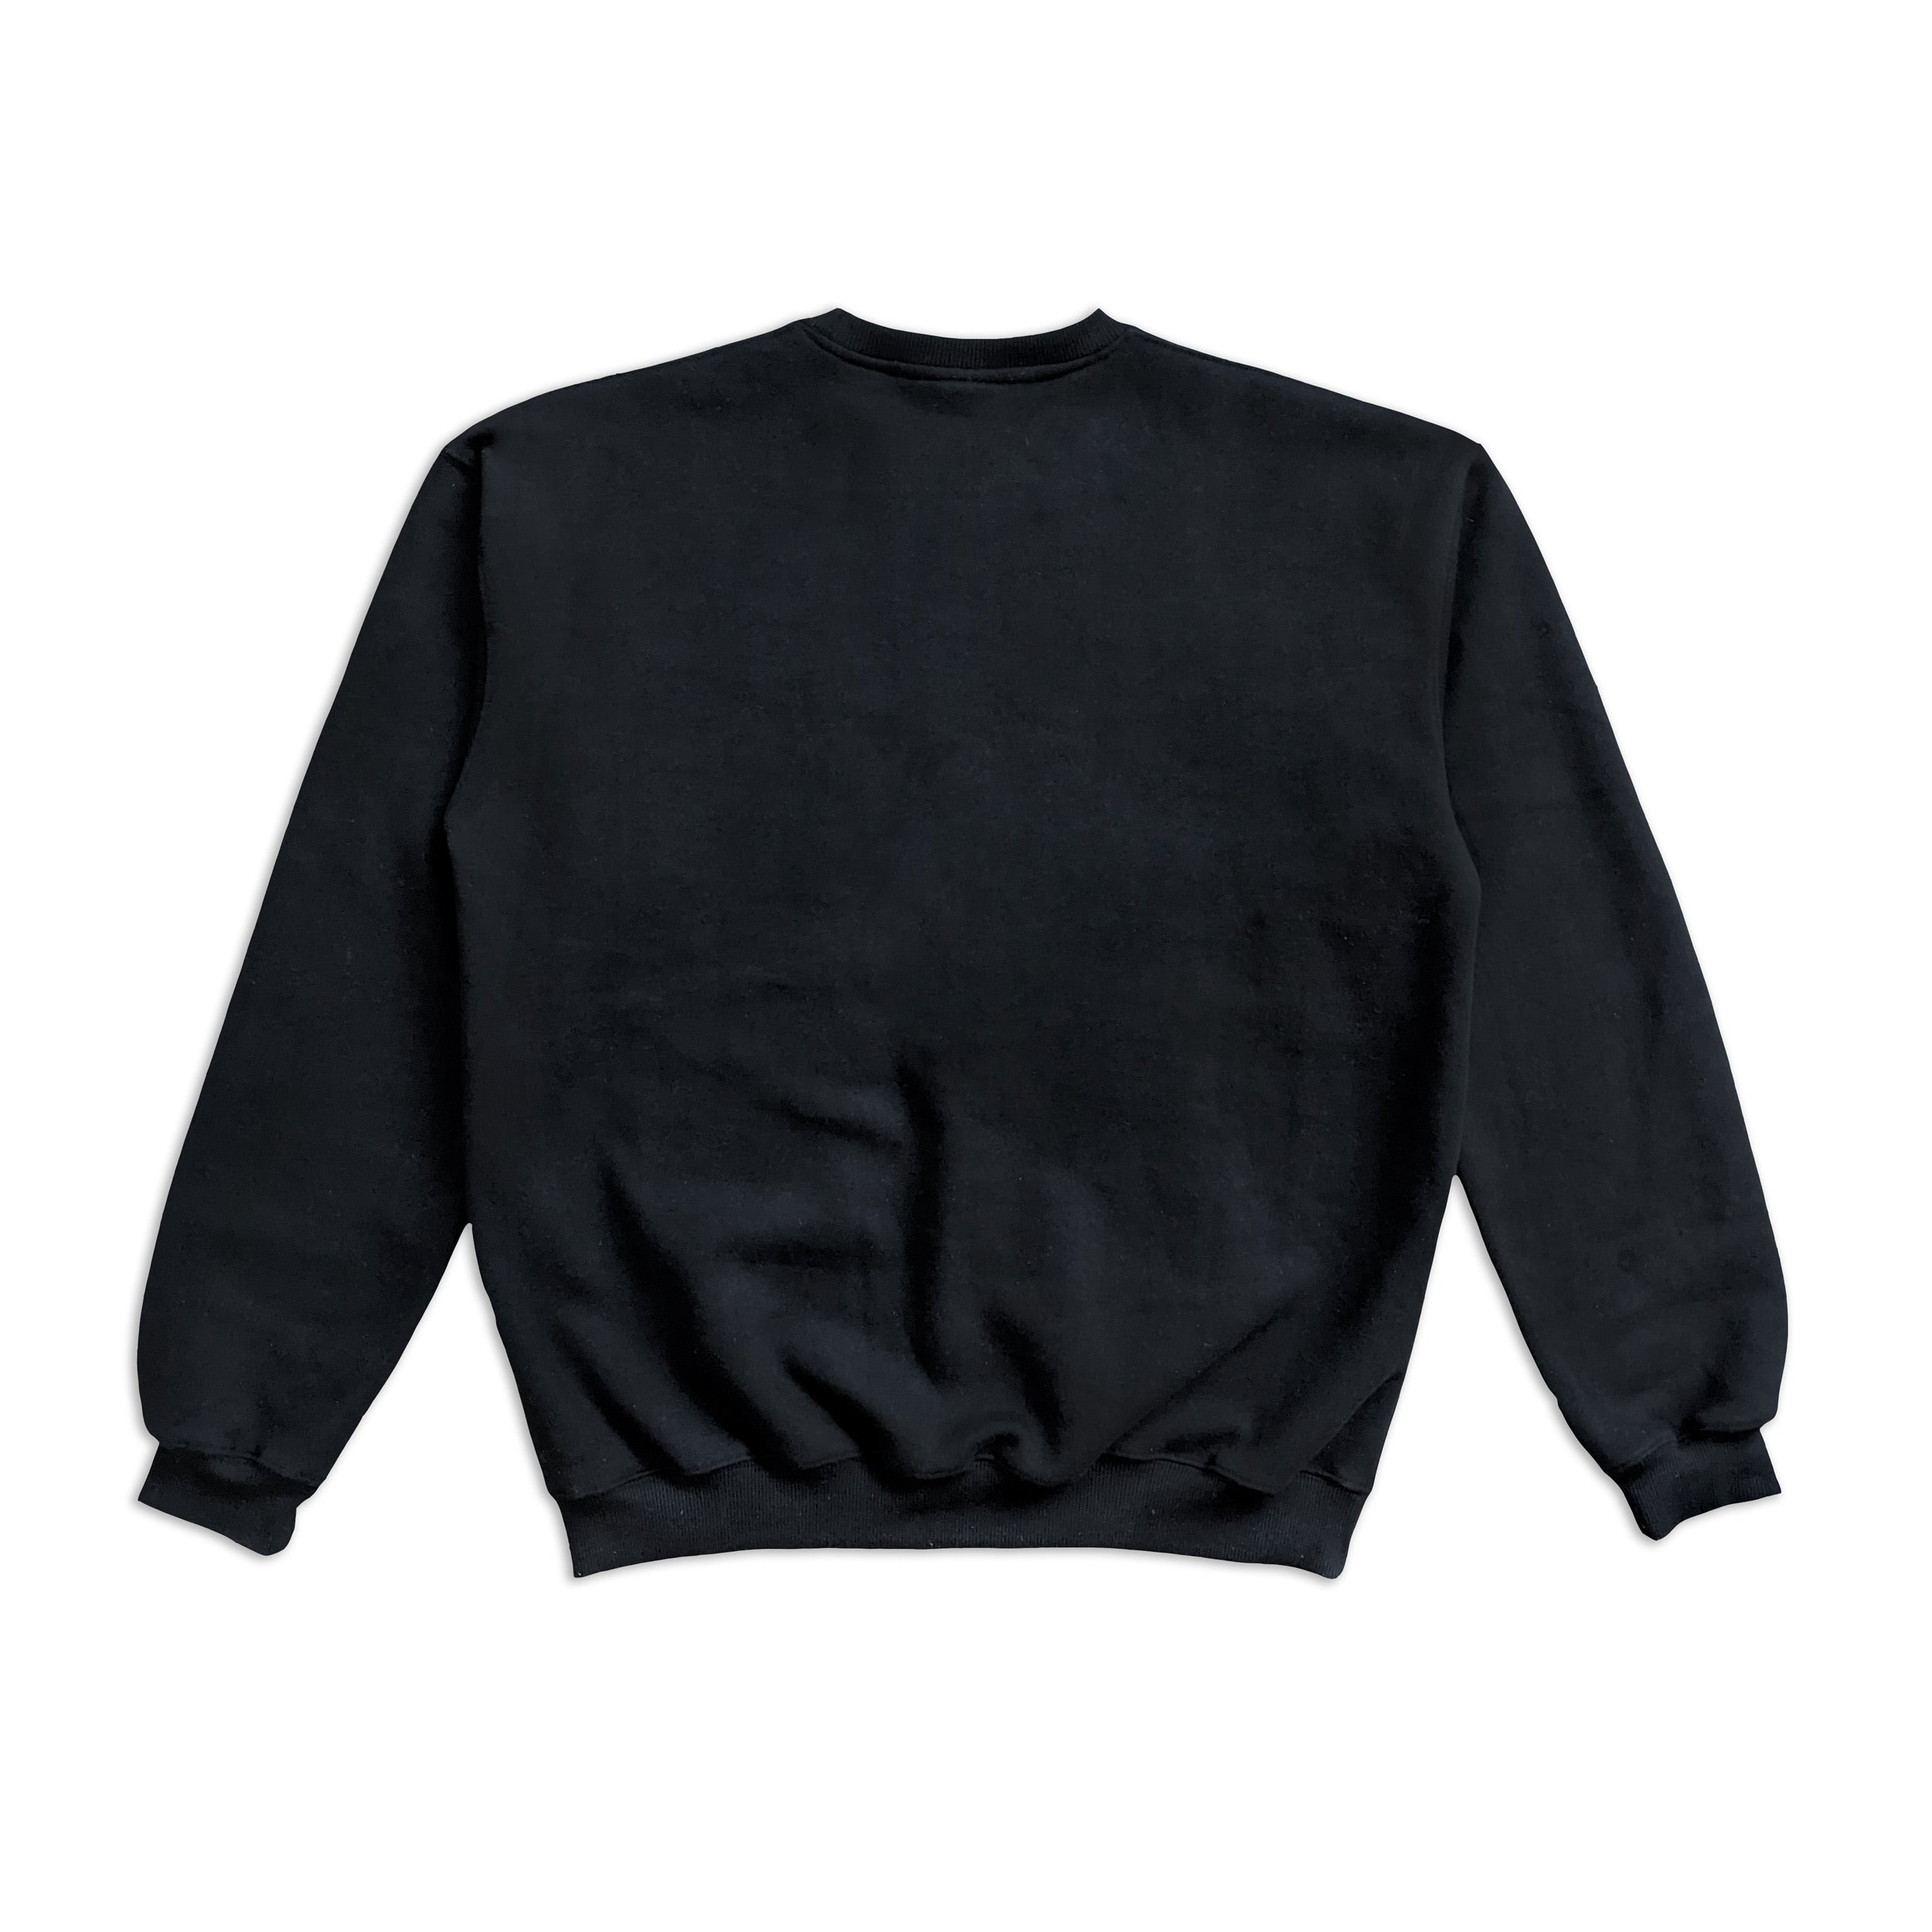 Black Luxury Sportswear Sweater